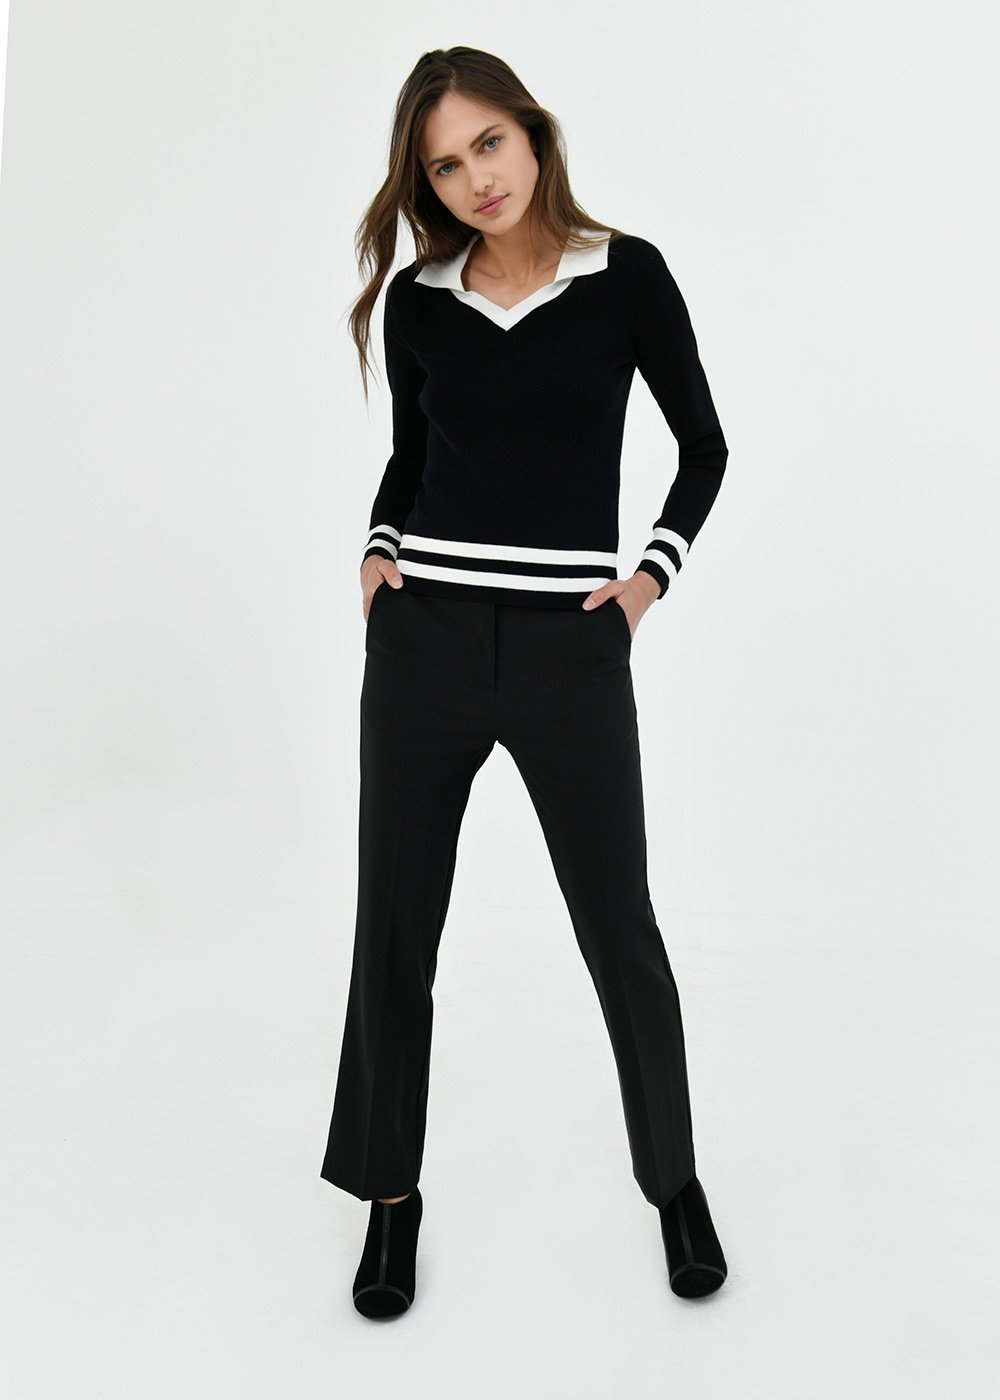 Jacqueline flared trousers - Black - Woman